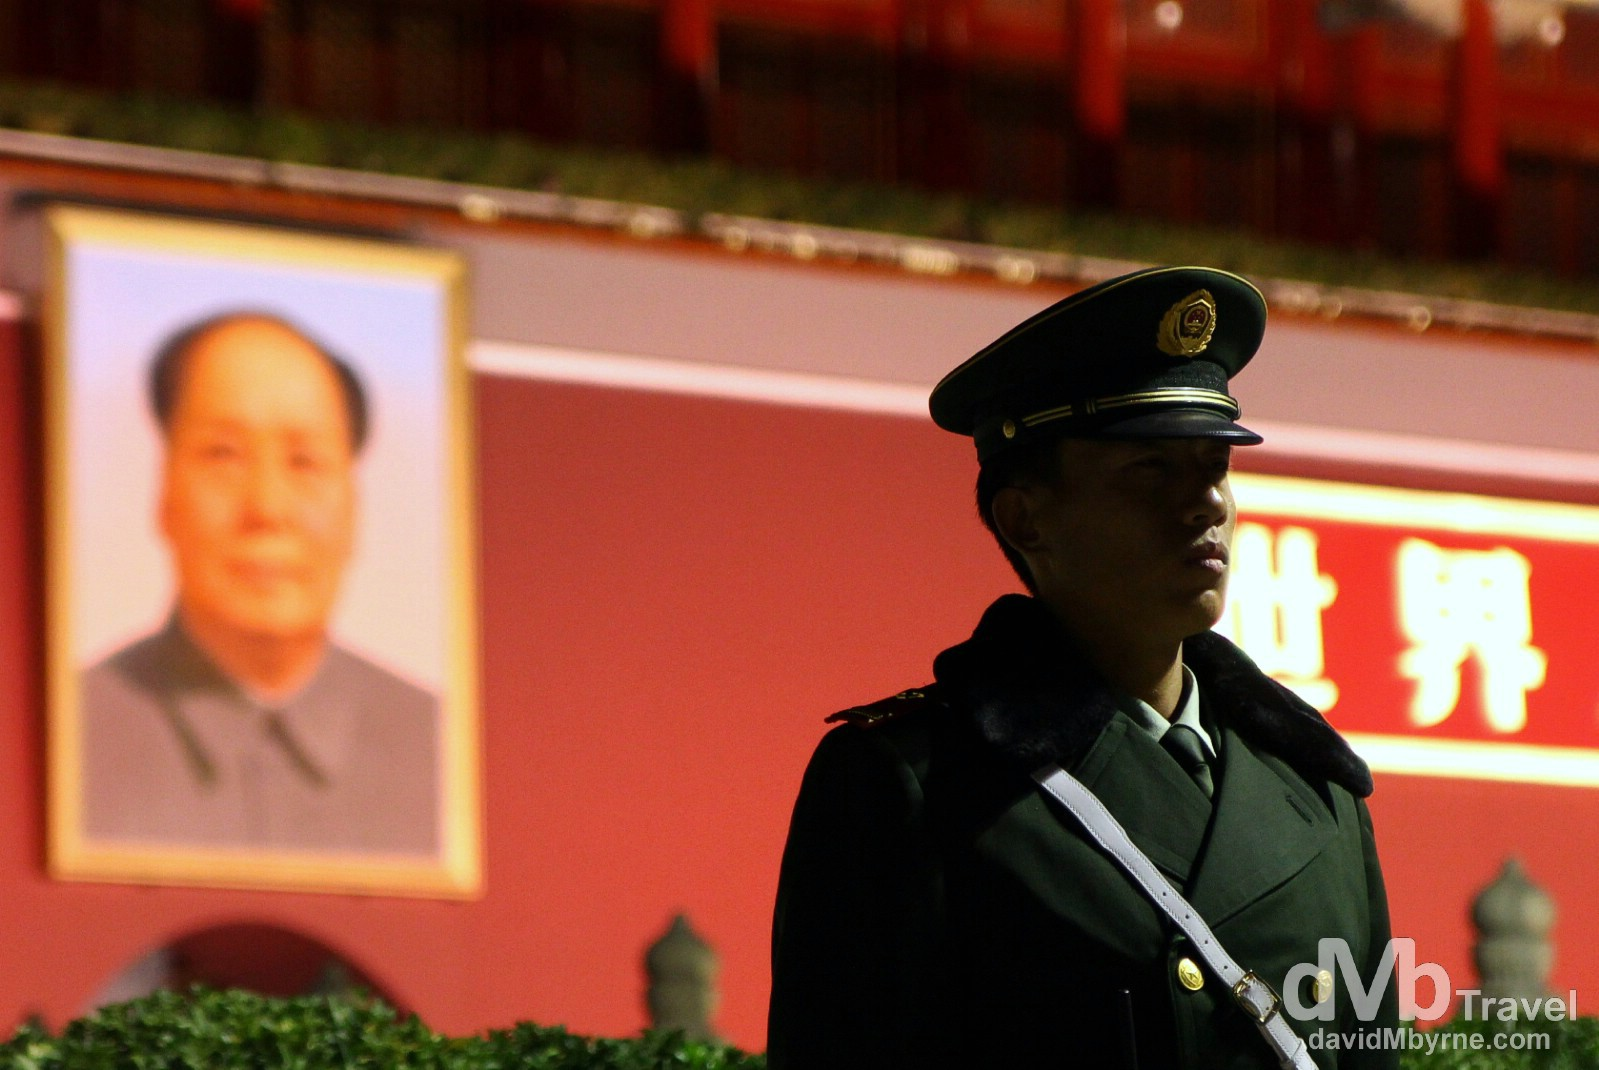 Standing guard outside of Tian'anmen Gate, Beijing, China. October 27th 2012.